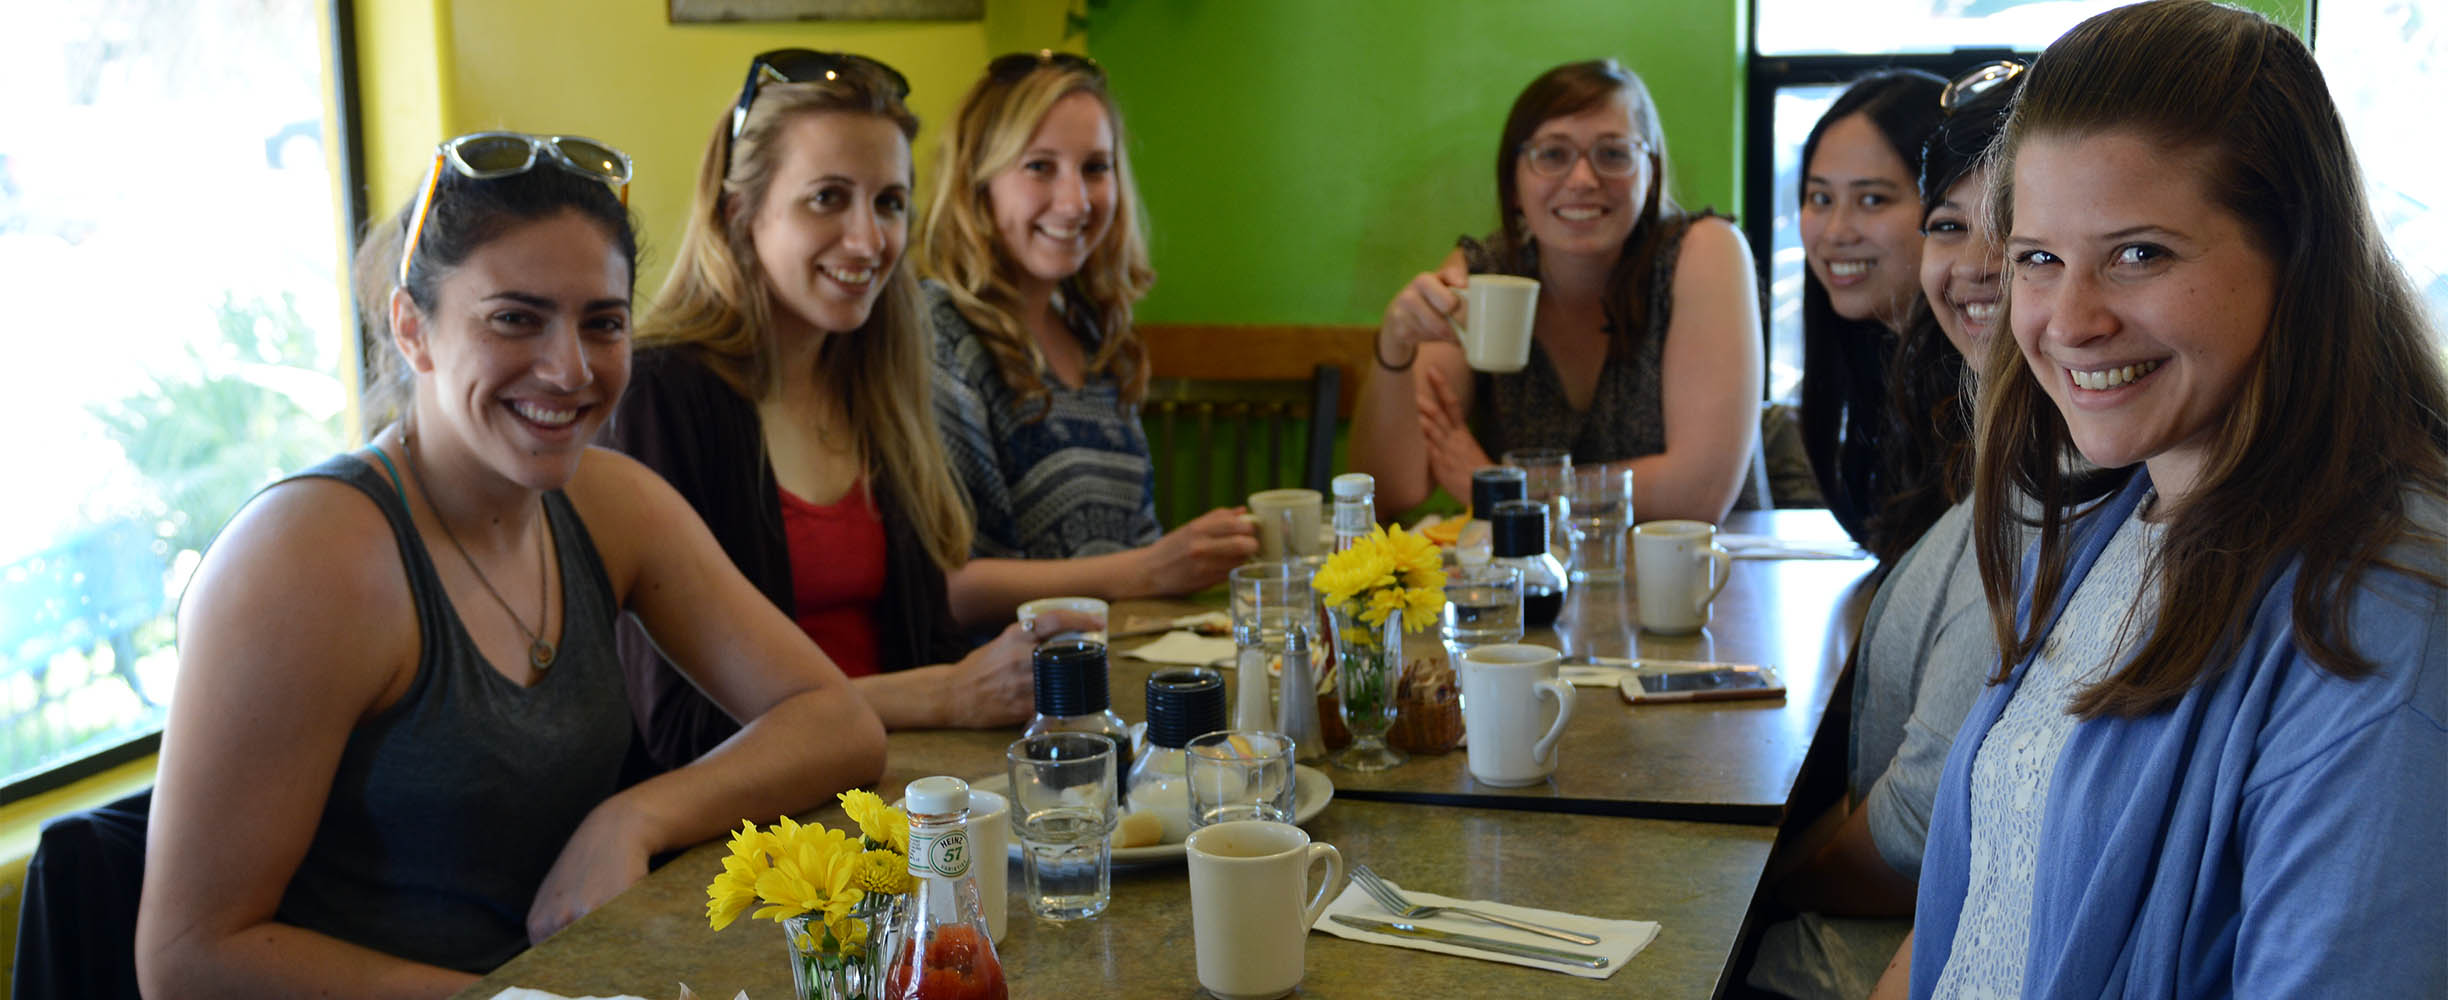 Breakfast and brunch in Santa Cruz with Brazilian roots and our typical Santa Cruz ambiance and culture lived intensily every day!